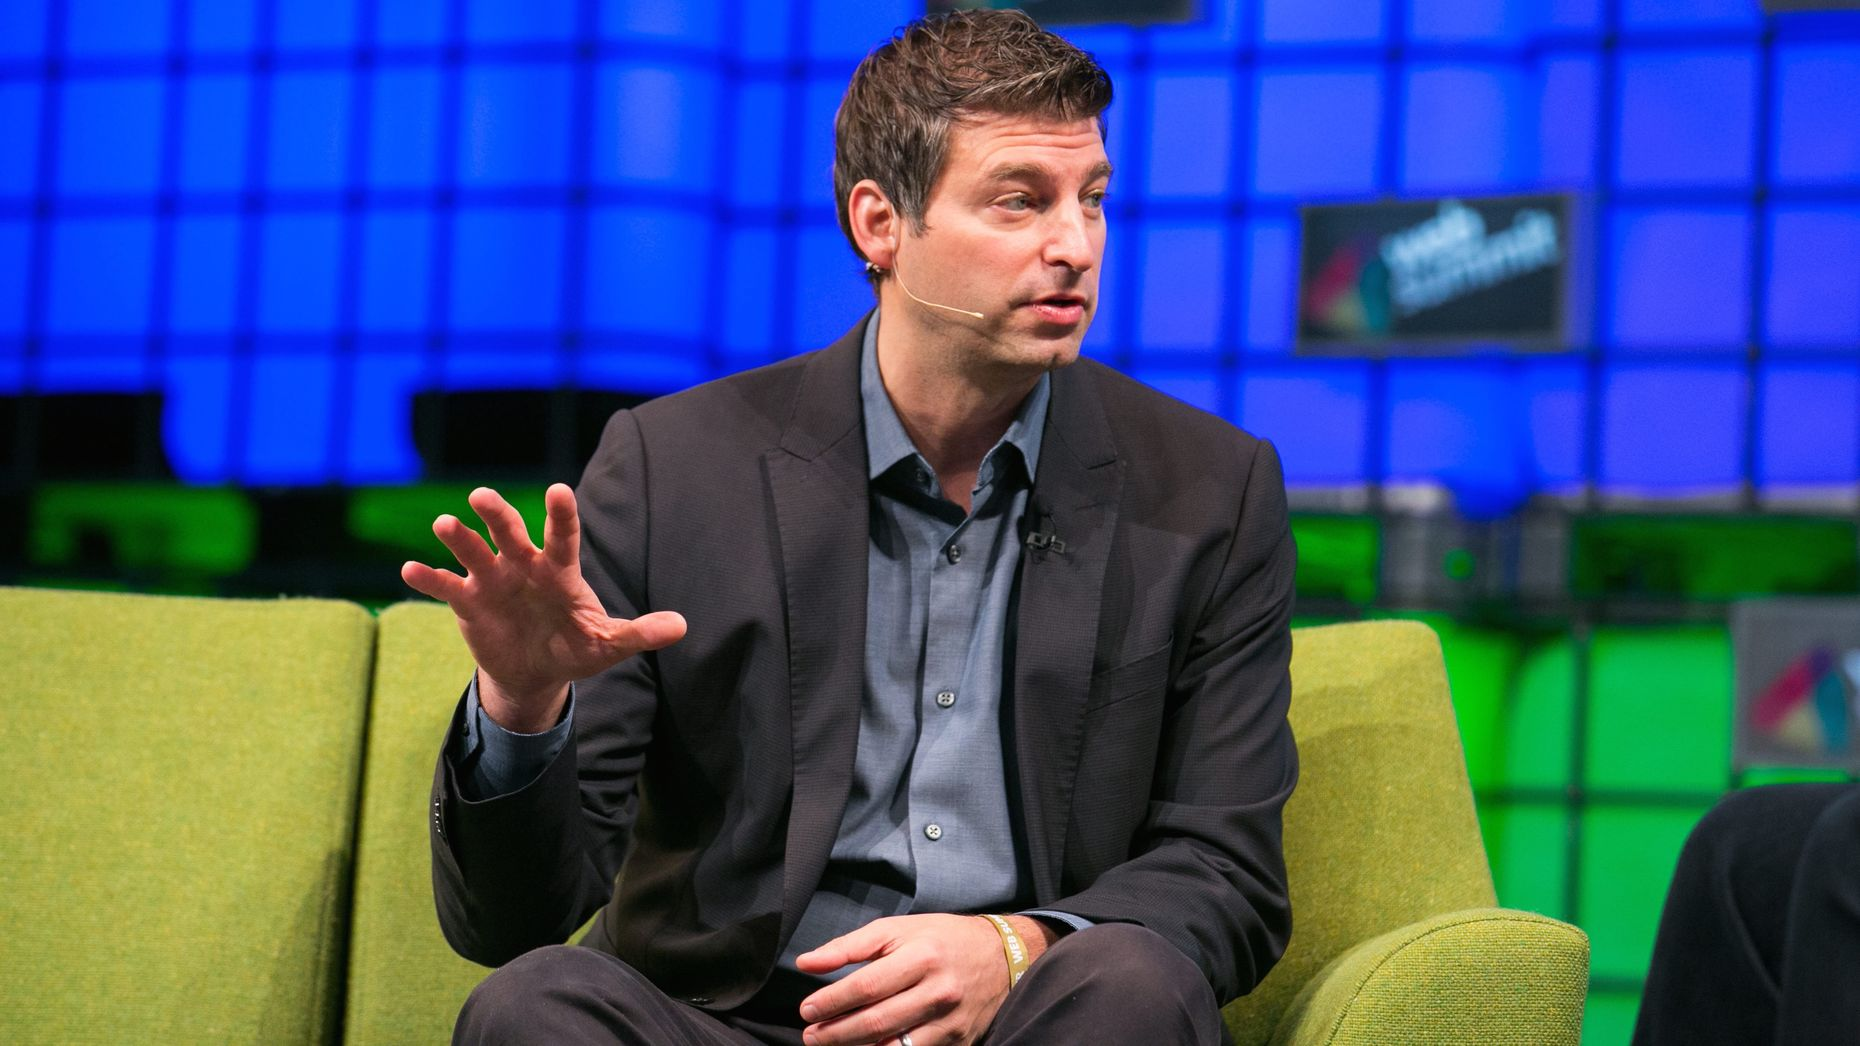 Twitter COO Adam Bain. Photo by Flickr/Sportsfile.